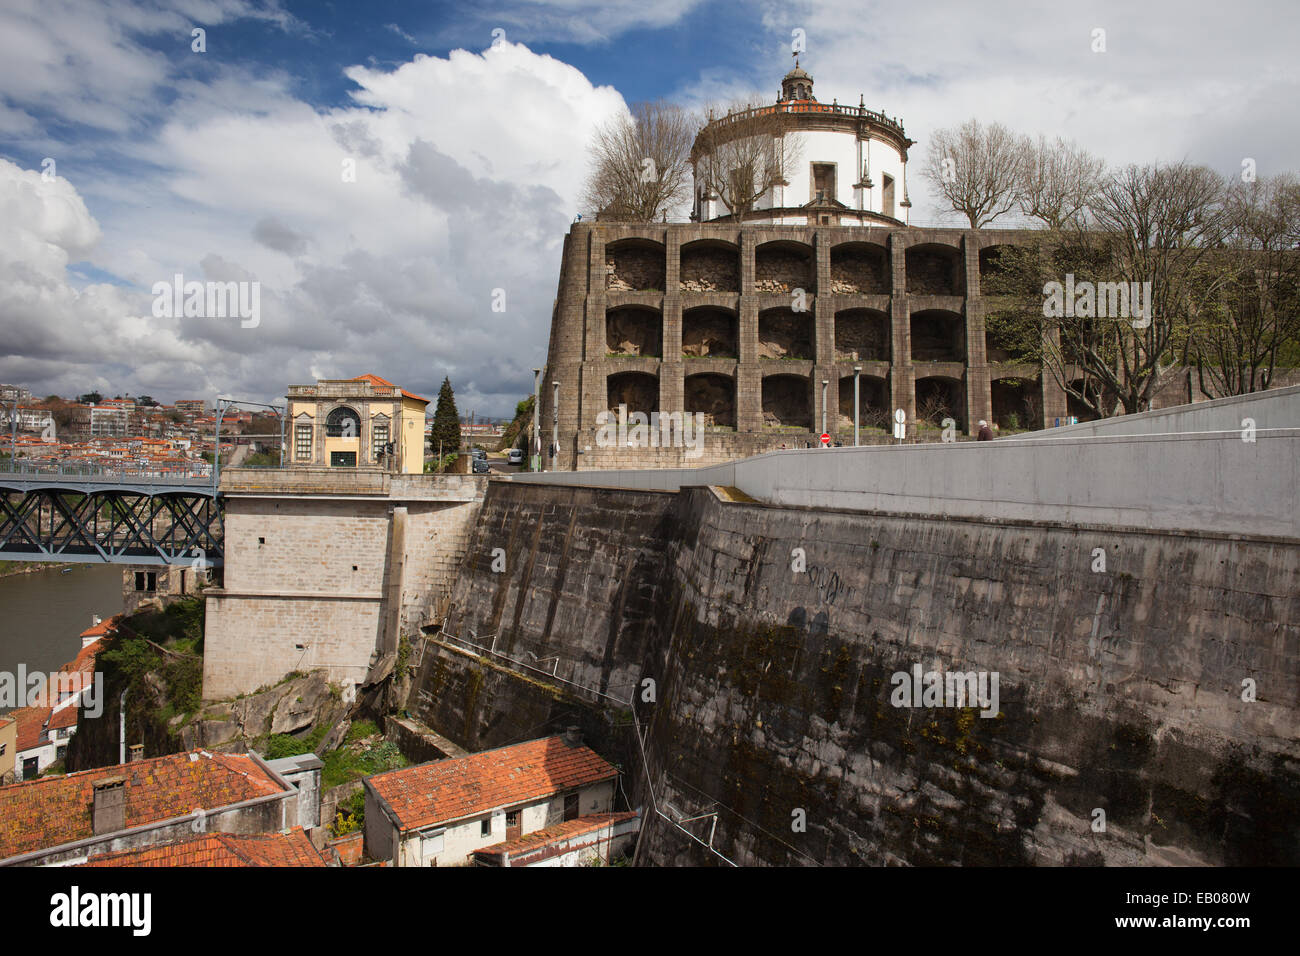 Augustinian monastery of Serra do Pilar on top of a hill in Oporto, Portugal. - Stock Image